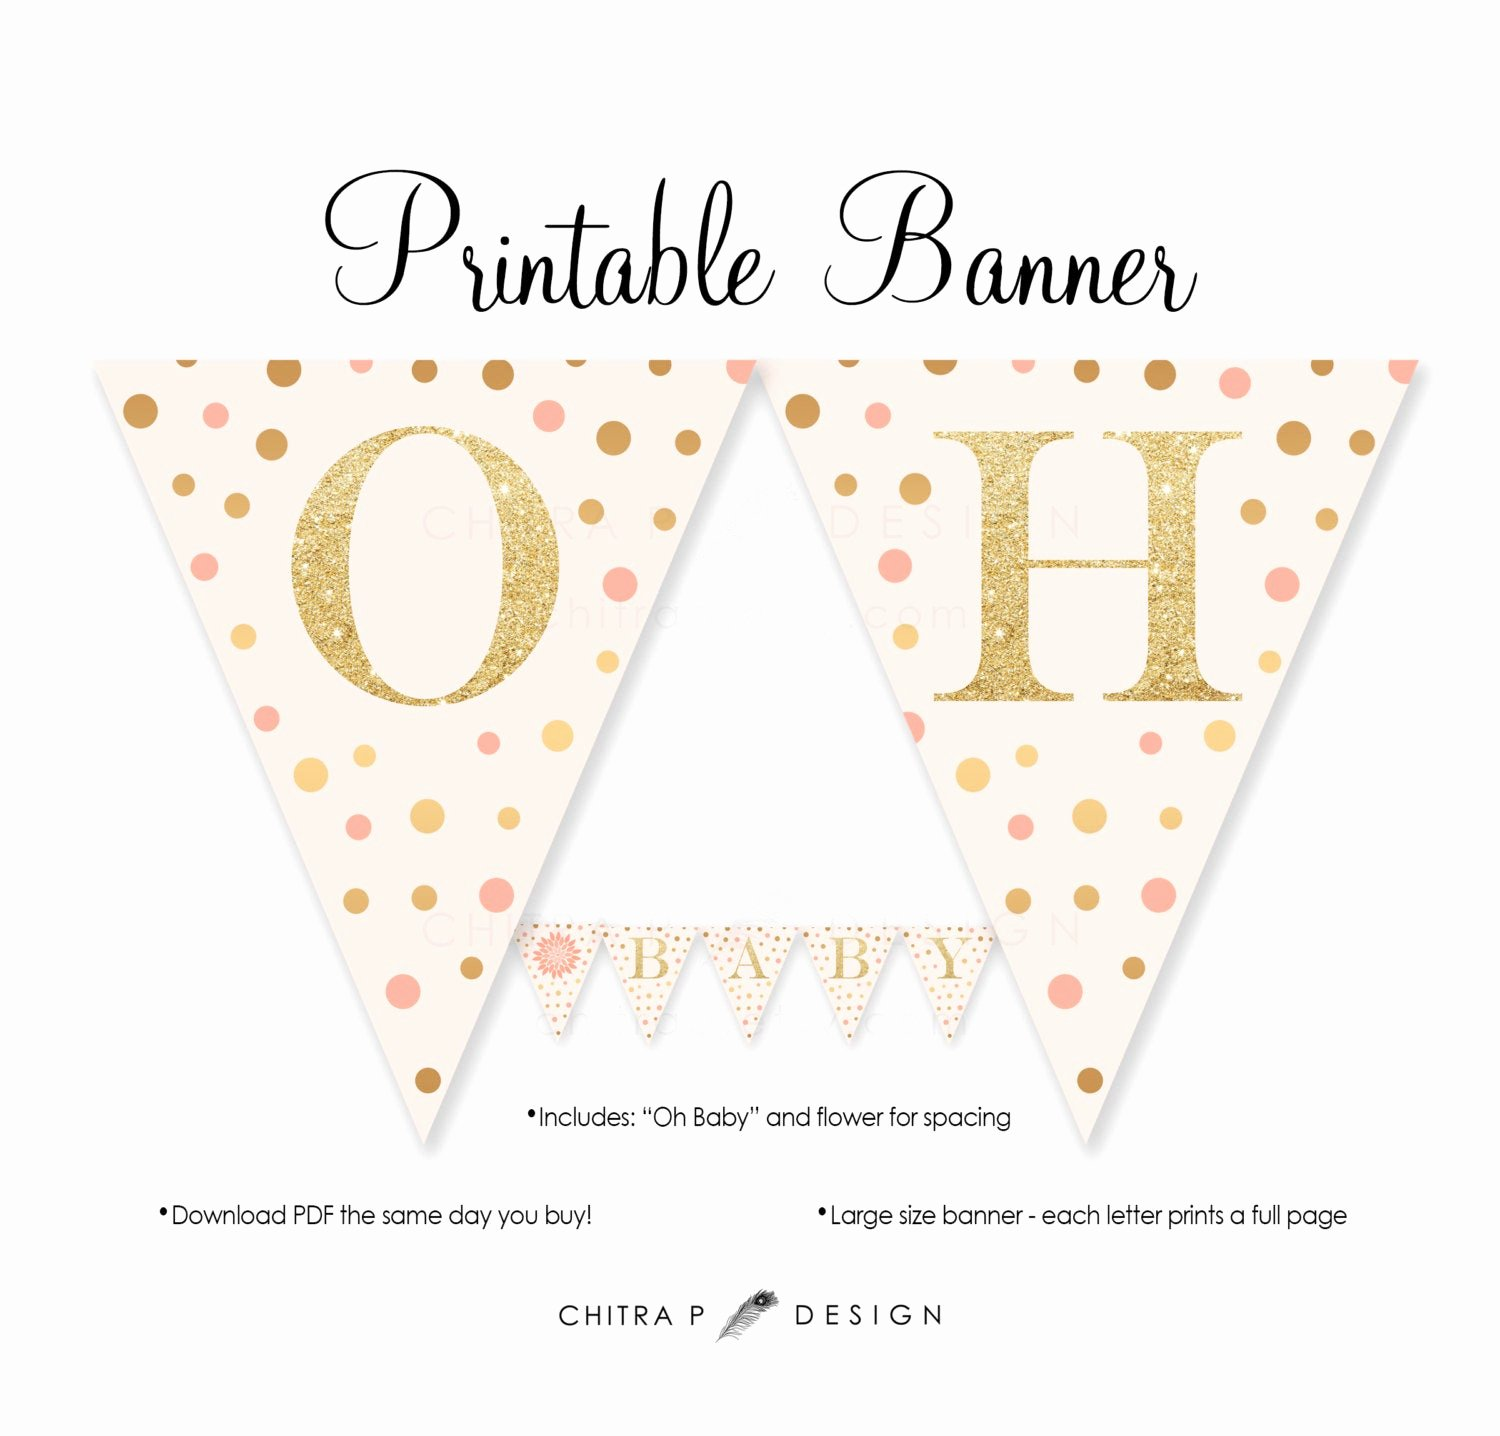 Baby Shower Banner Printable New Pink Gold Baby Shower Banner Printable Blush Glitter Oh